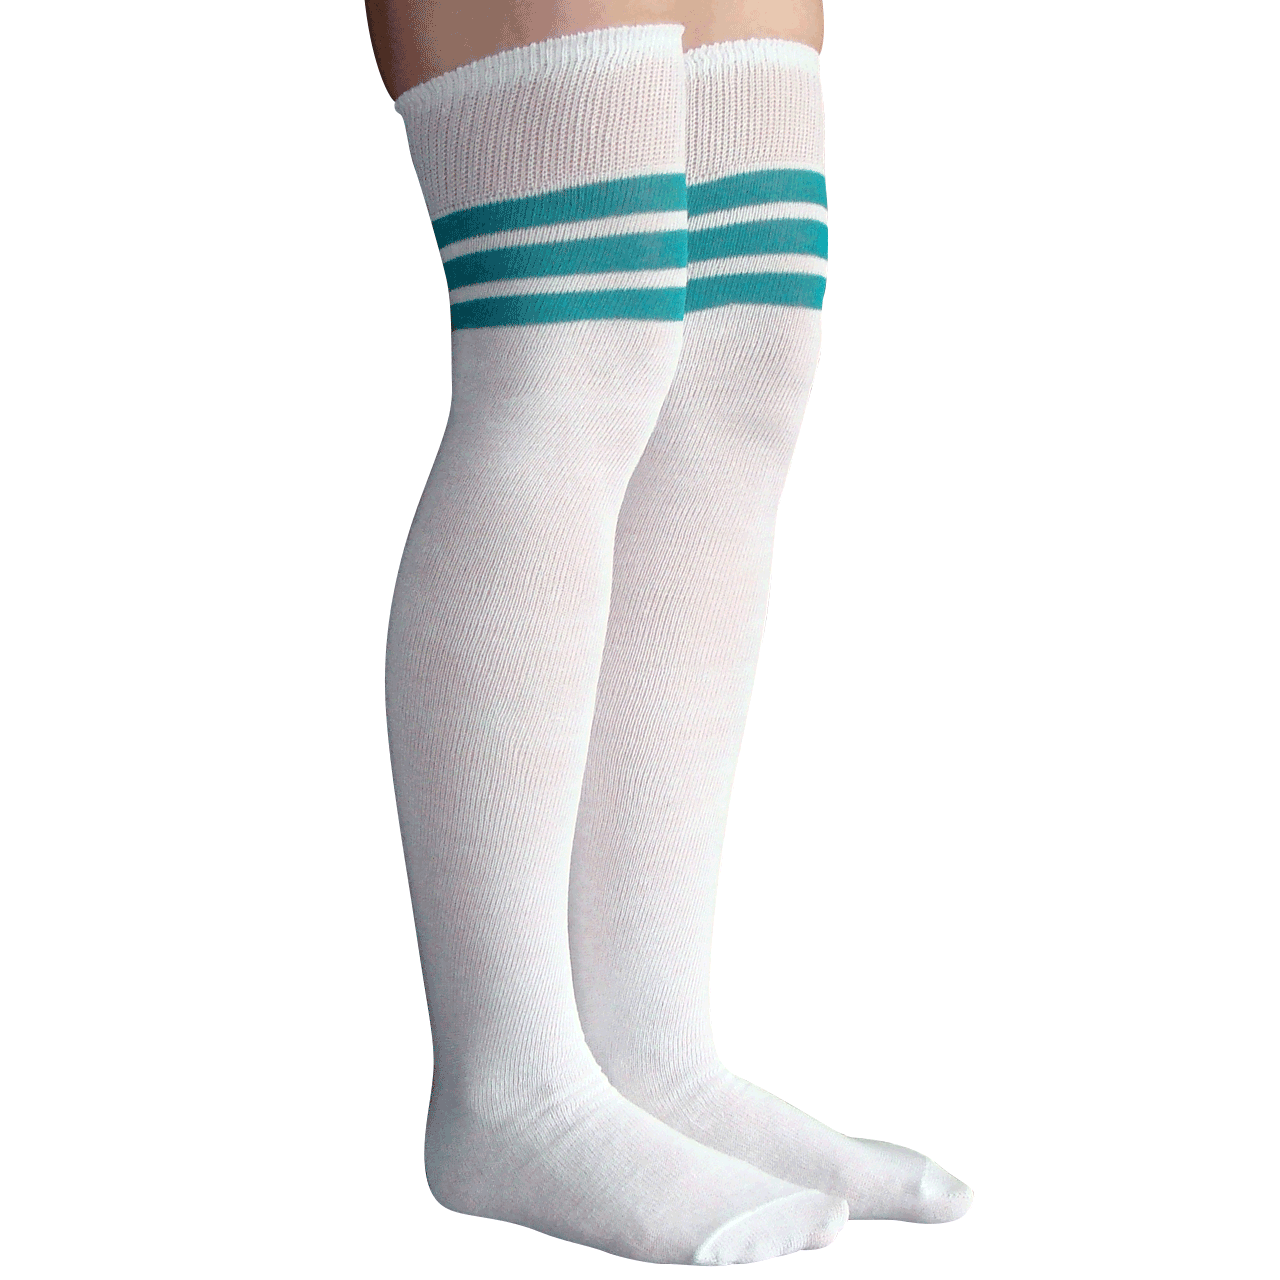 397f656f1ce White and Teal Striped Thigh Highs